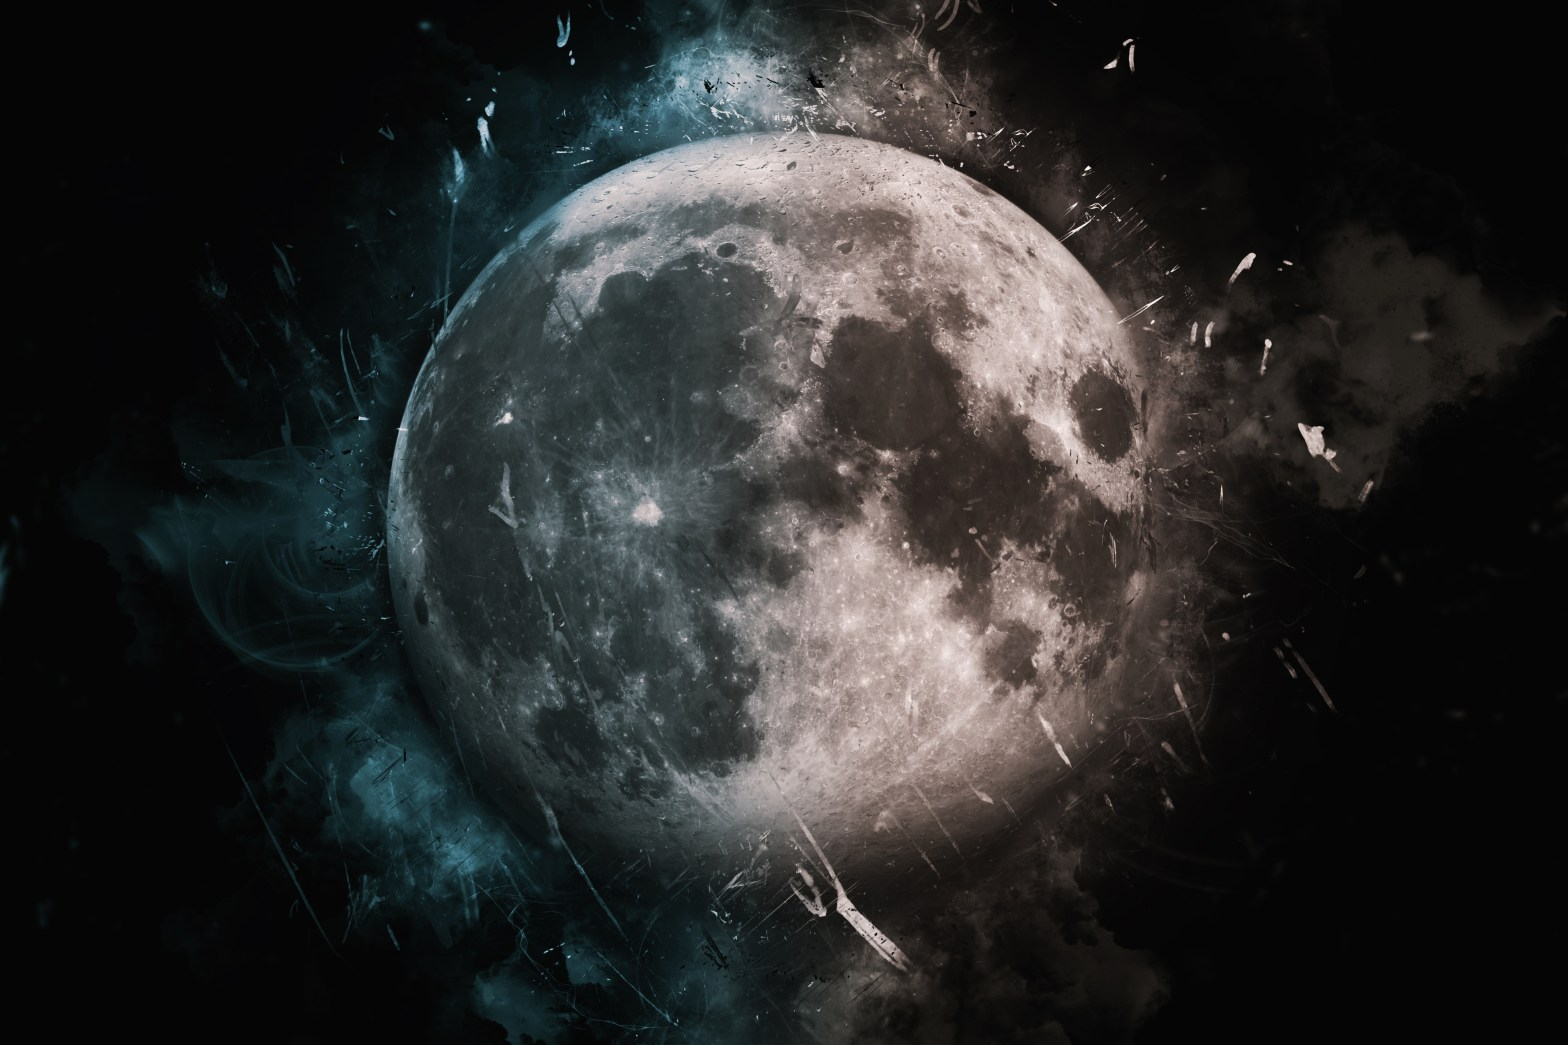 the moon in astrology, cancer, cancer zodiac, cancer zodiac sign